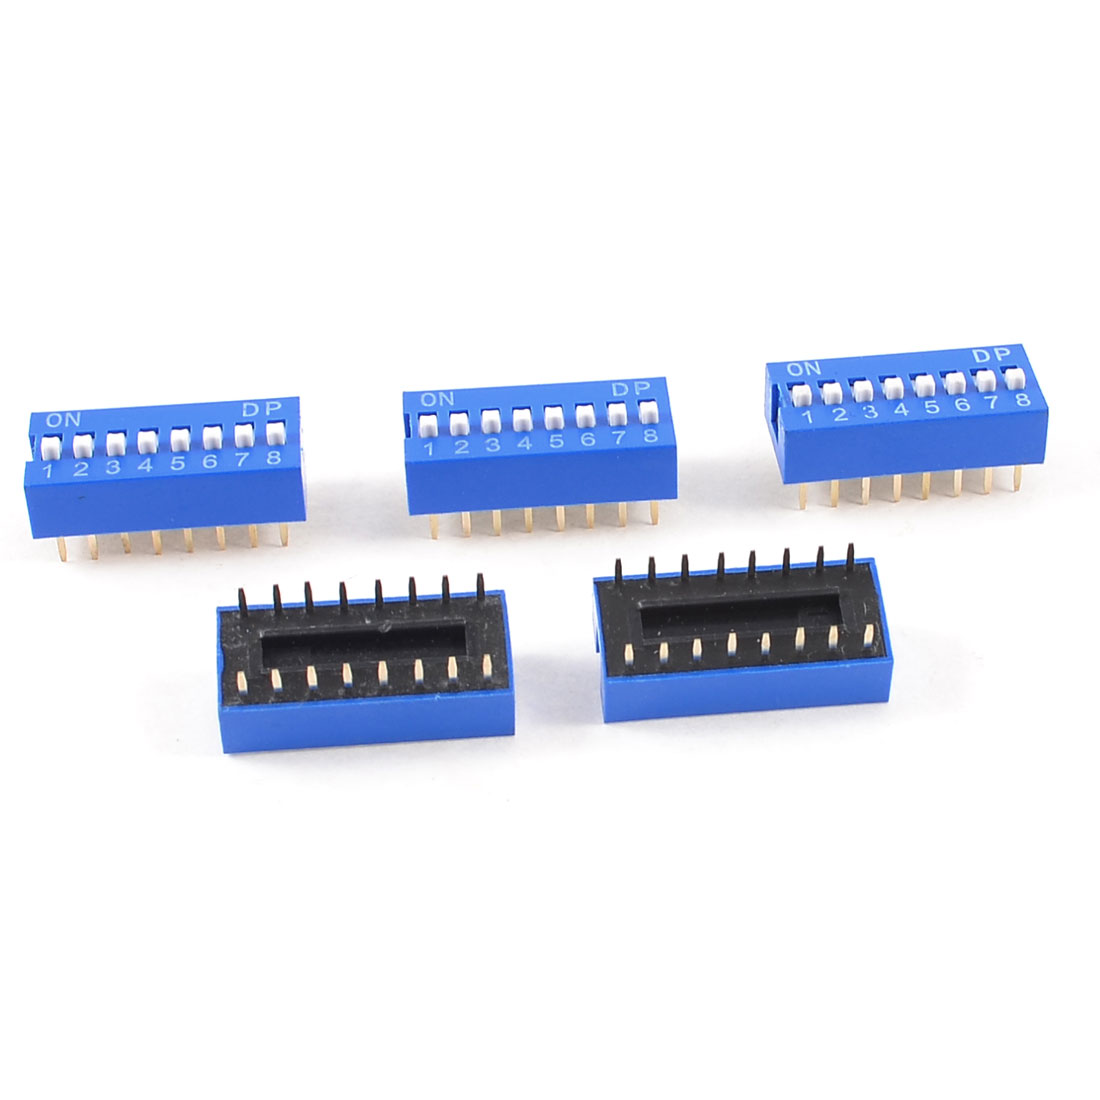 5 Pcs Blue Double Row 16 Pin 8 Positions 2.54mm Pitch DIP Switches